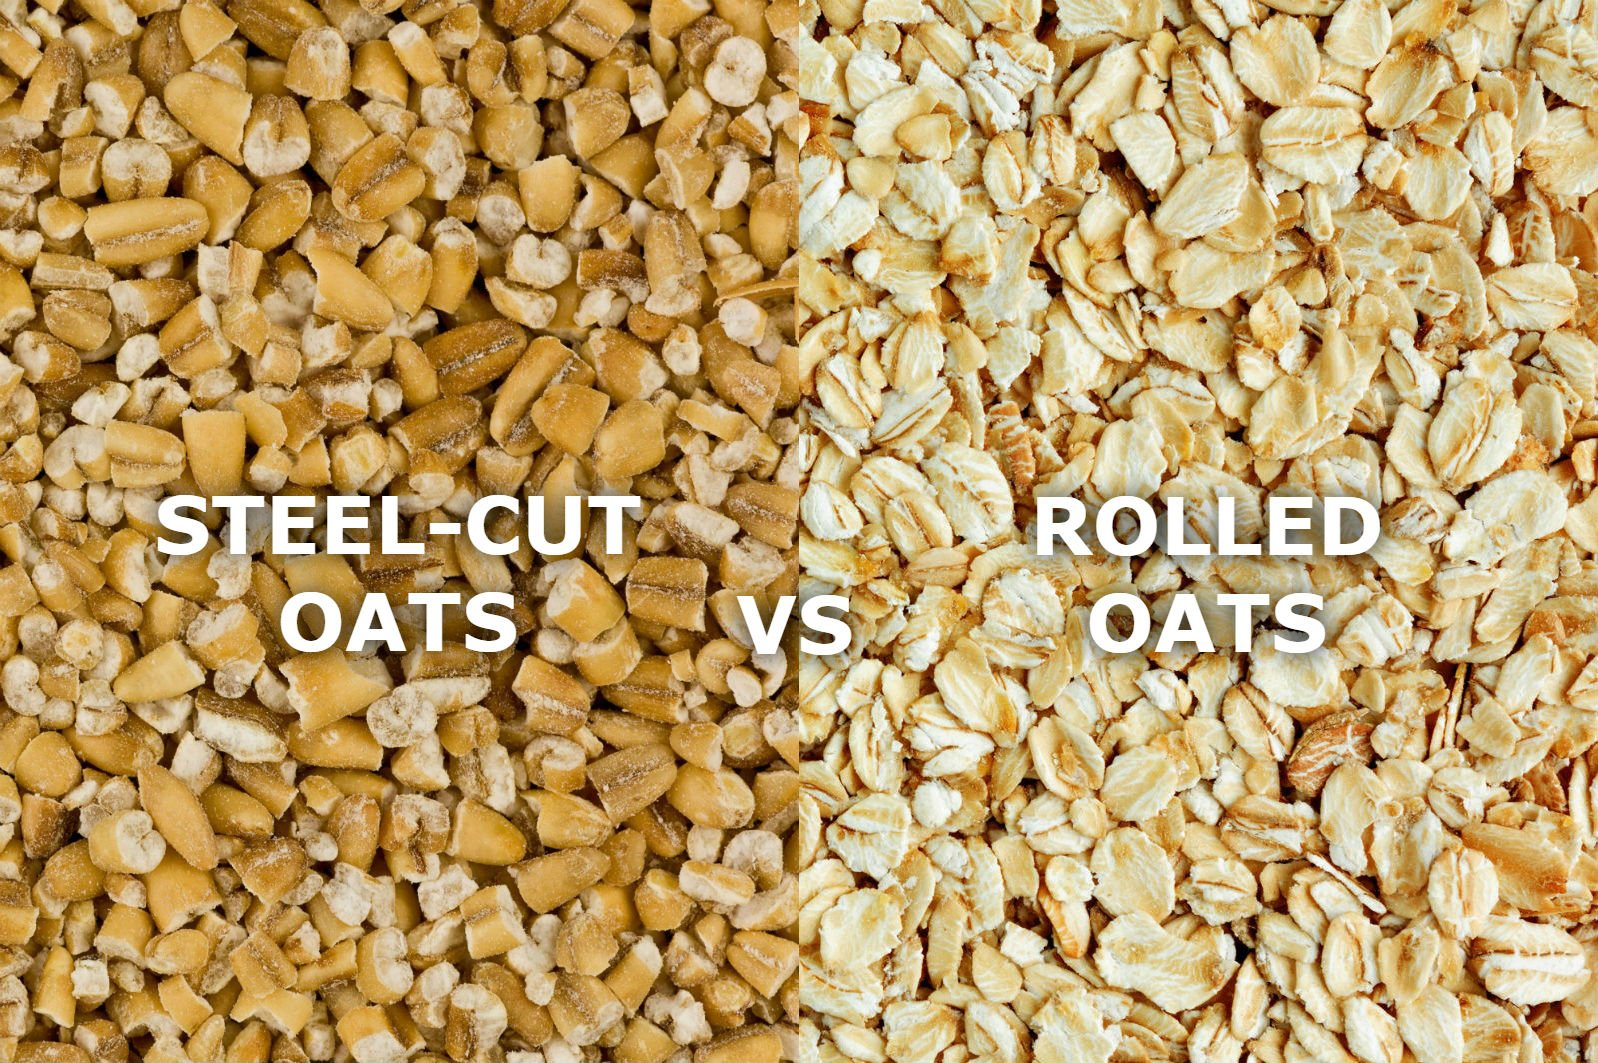 ARE STEEL-CUT OATS HEALTHIER THAN ROLLED OATS? - SPUD.ca